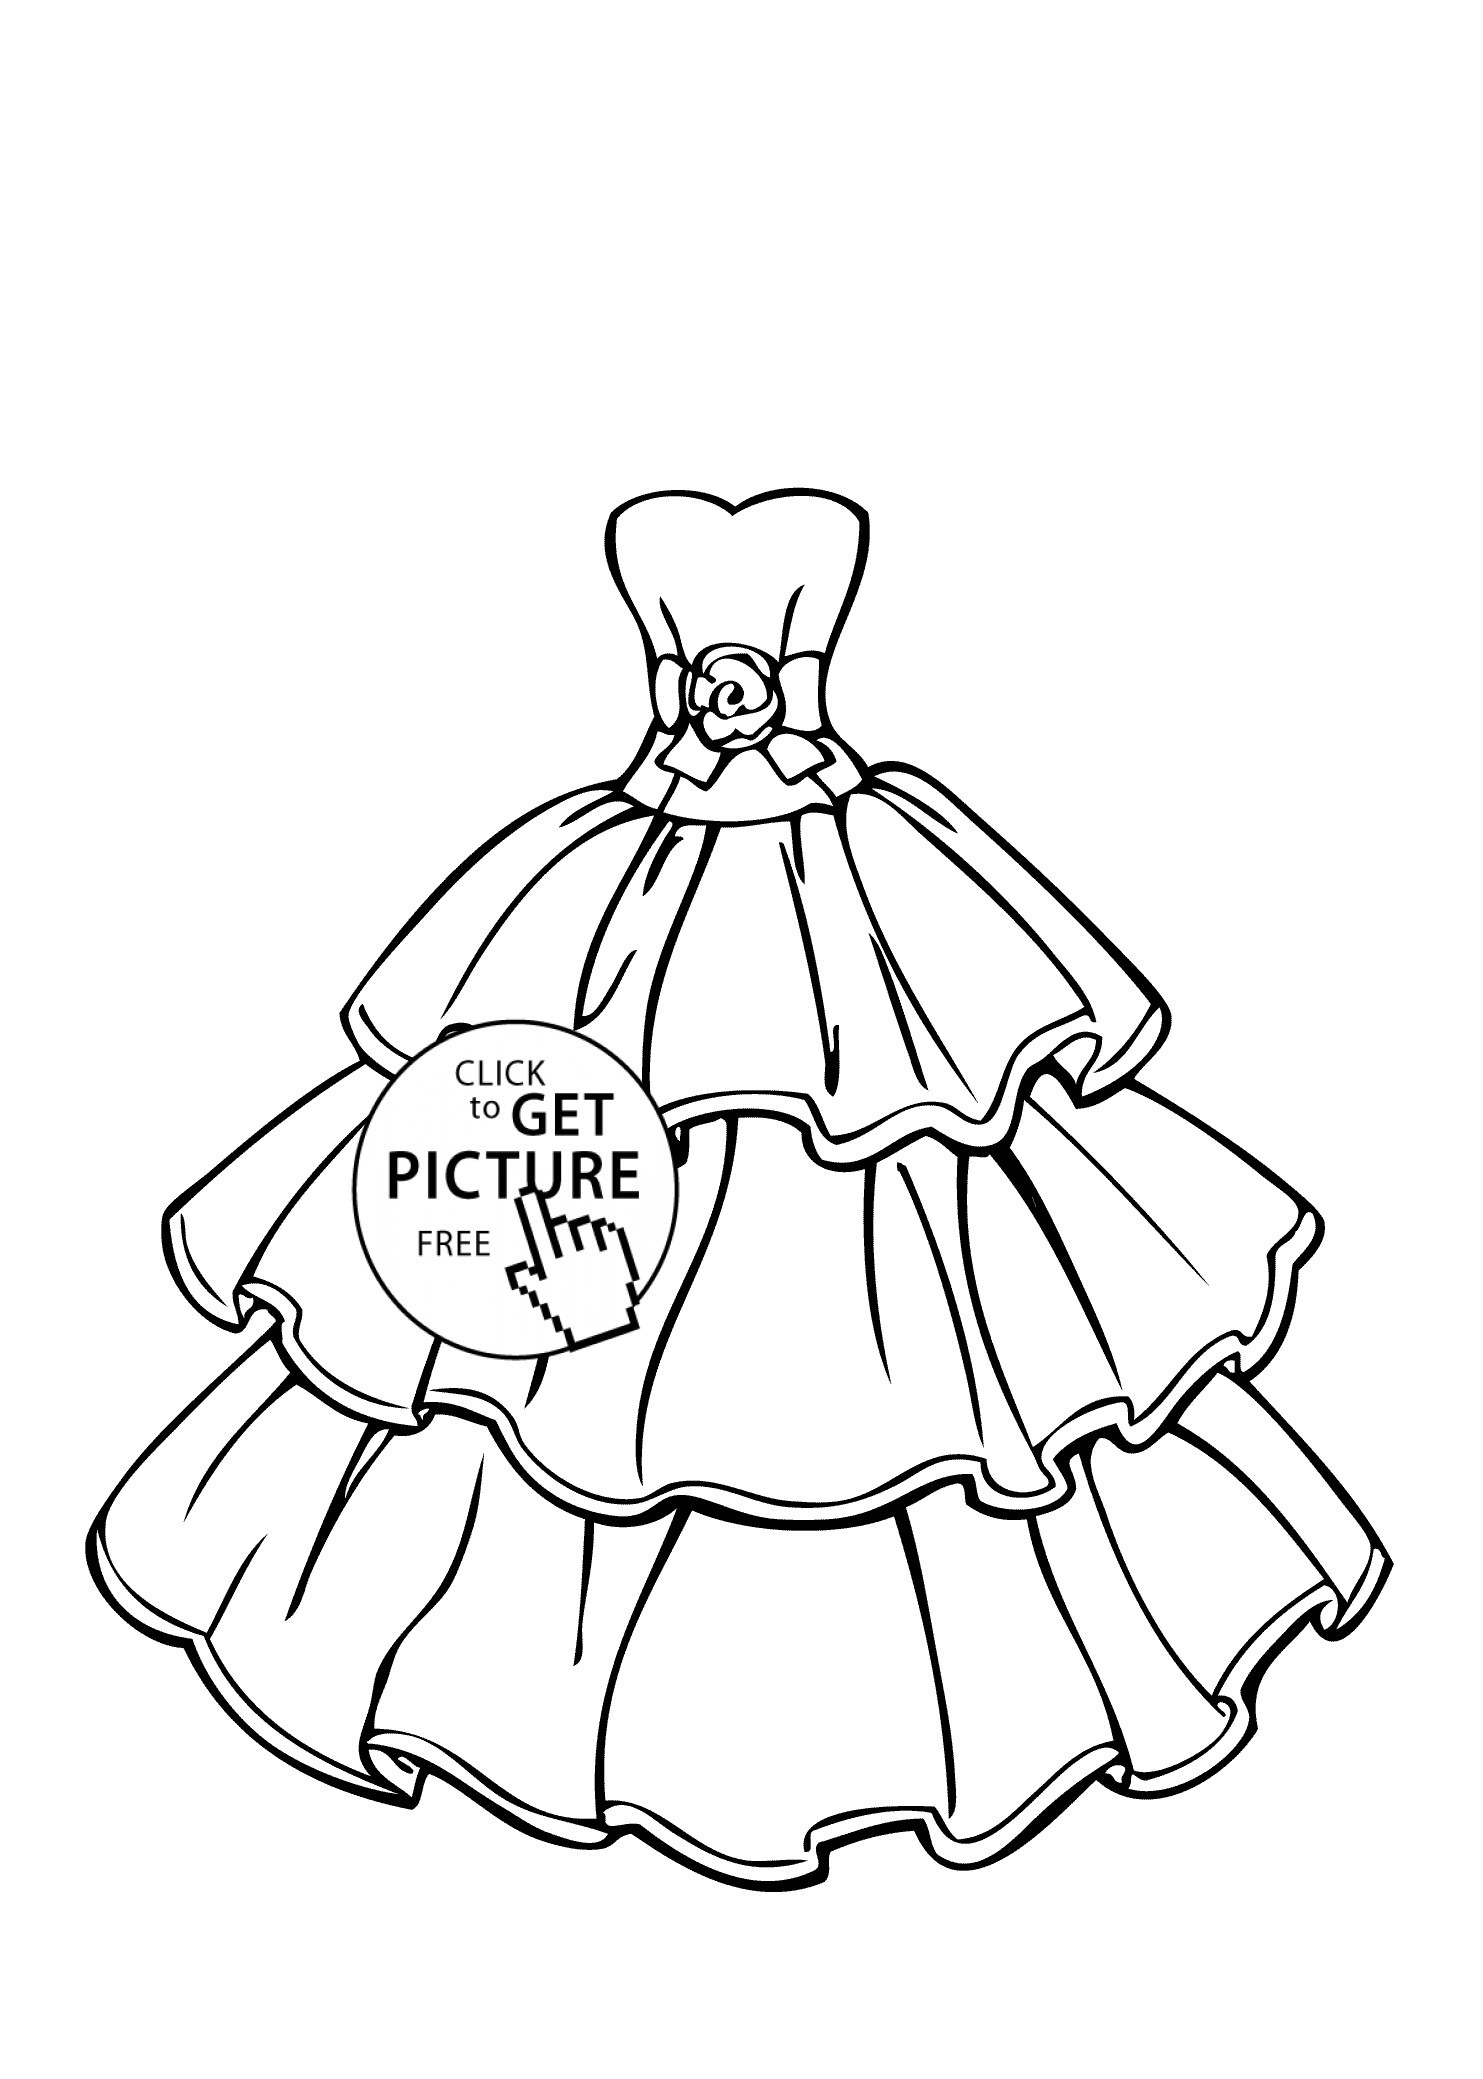 Best ideas about New Coloring Pages For Girls . Save or Pin Free Dress Coloring Pages Printable Now.